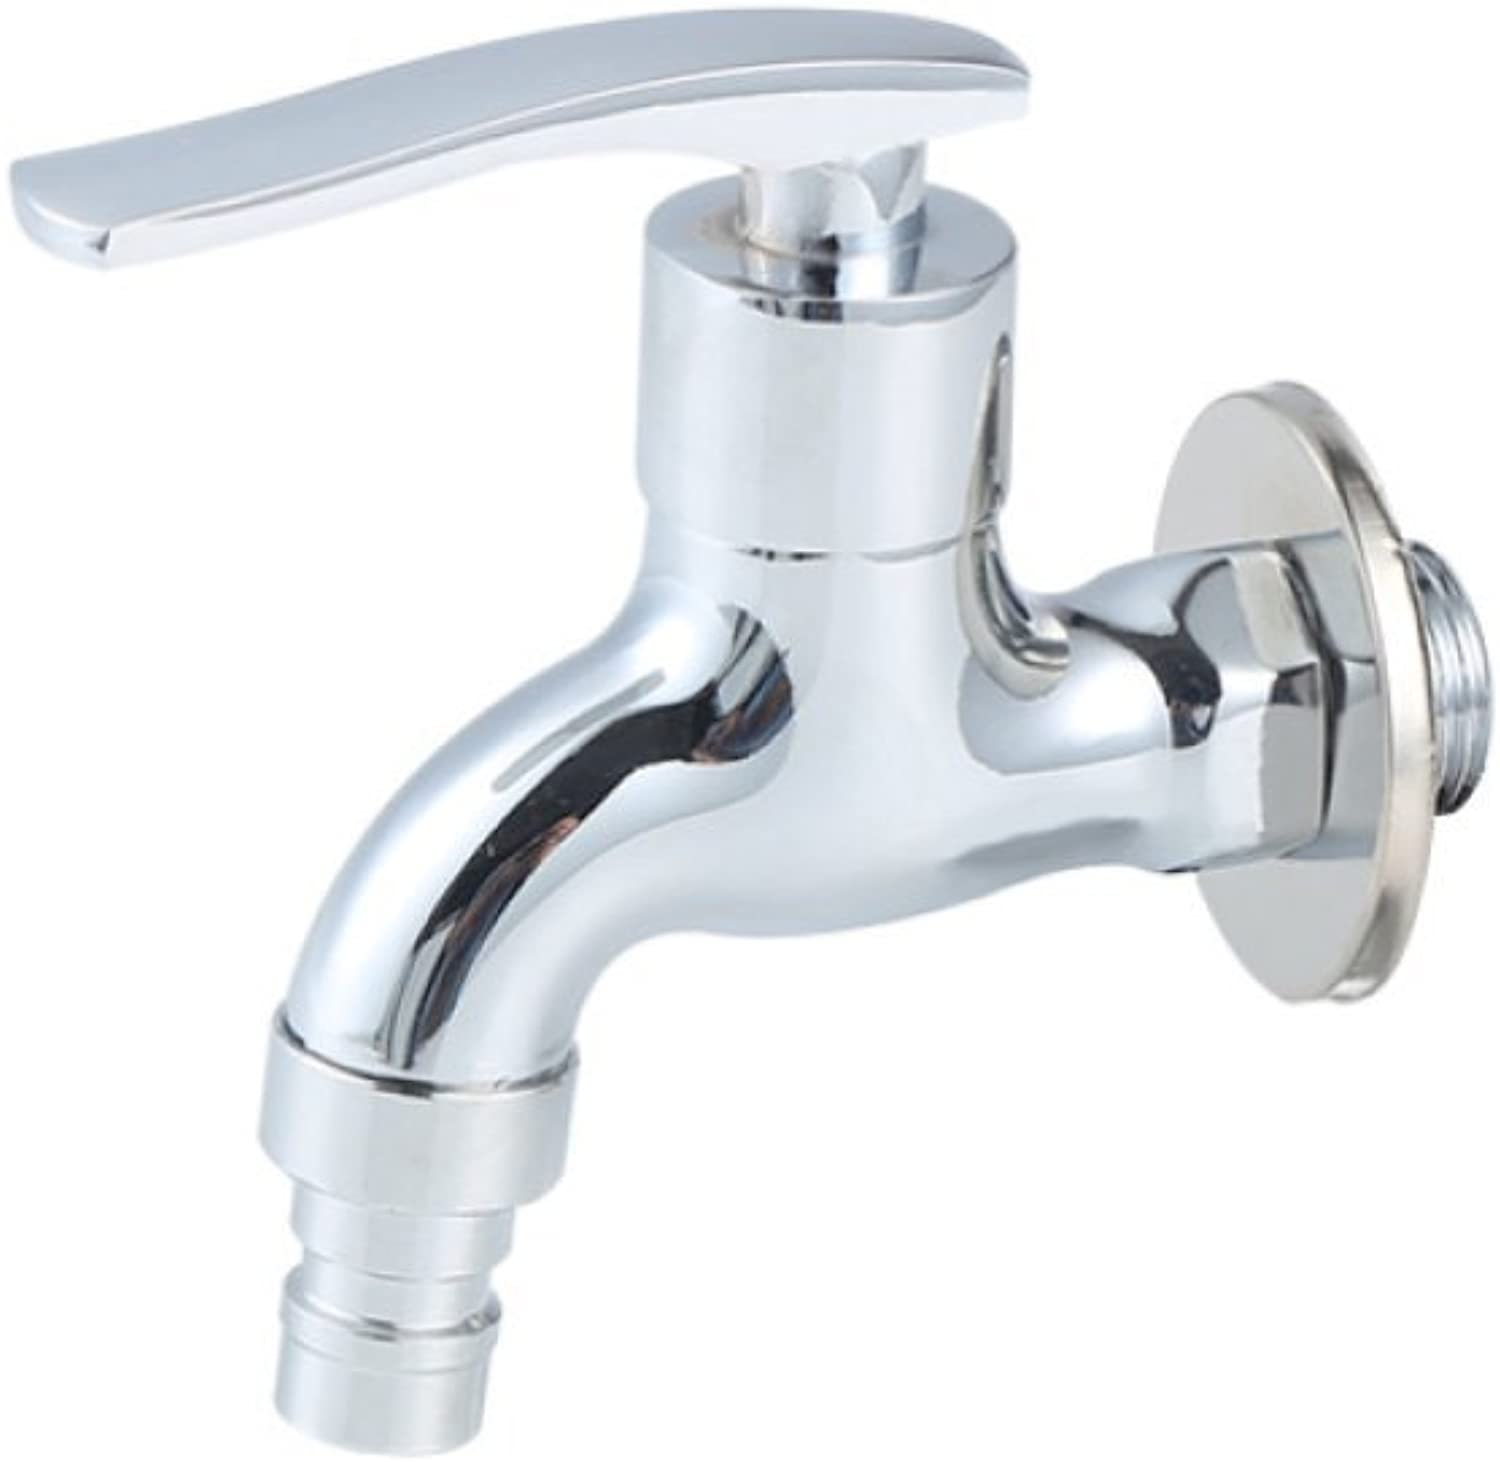 HH faucet hot cold copper toilet washbasin faucet bathroom fitting metal kitchen wall-mounted tap mixing faucet single-unit